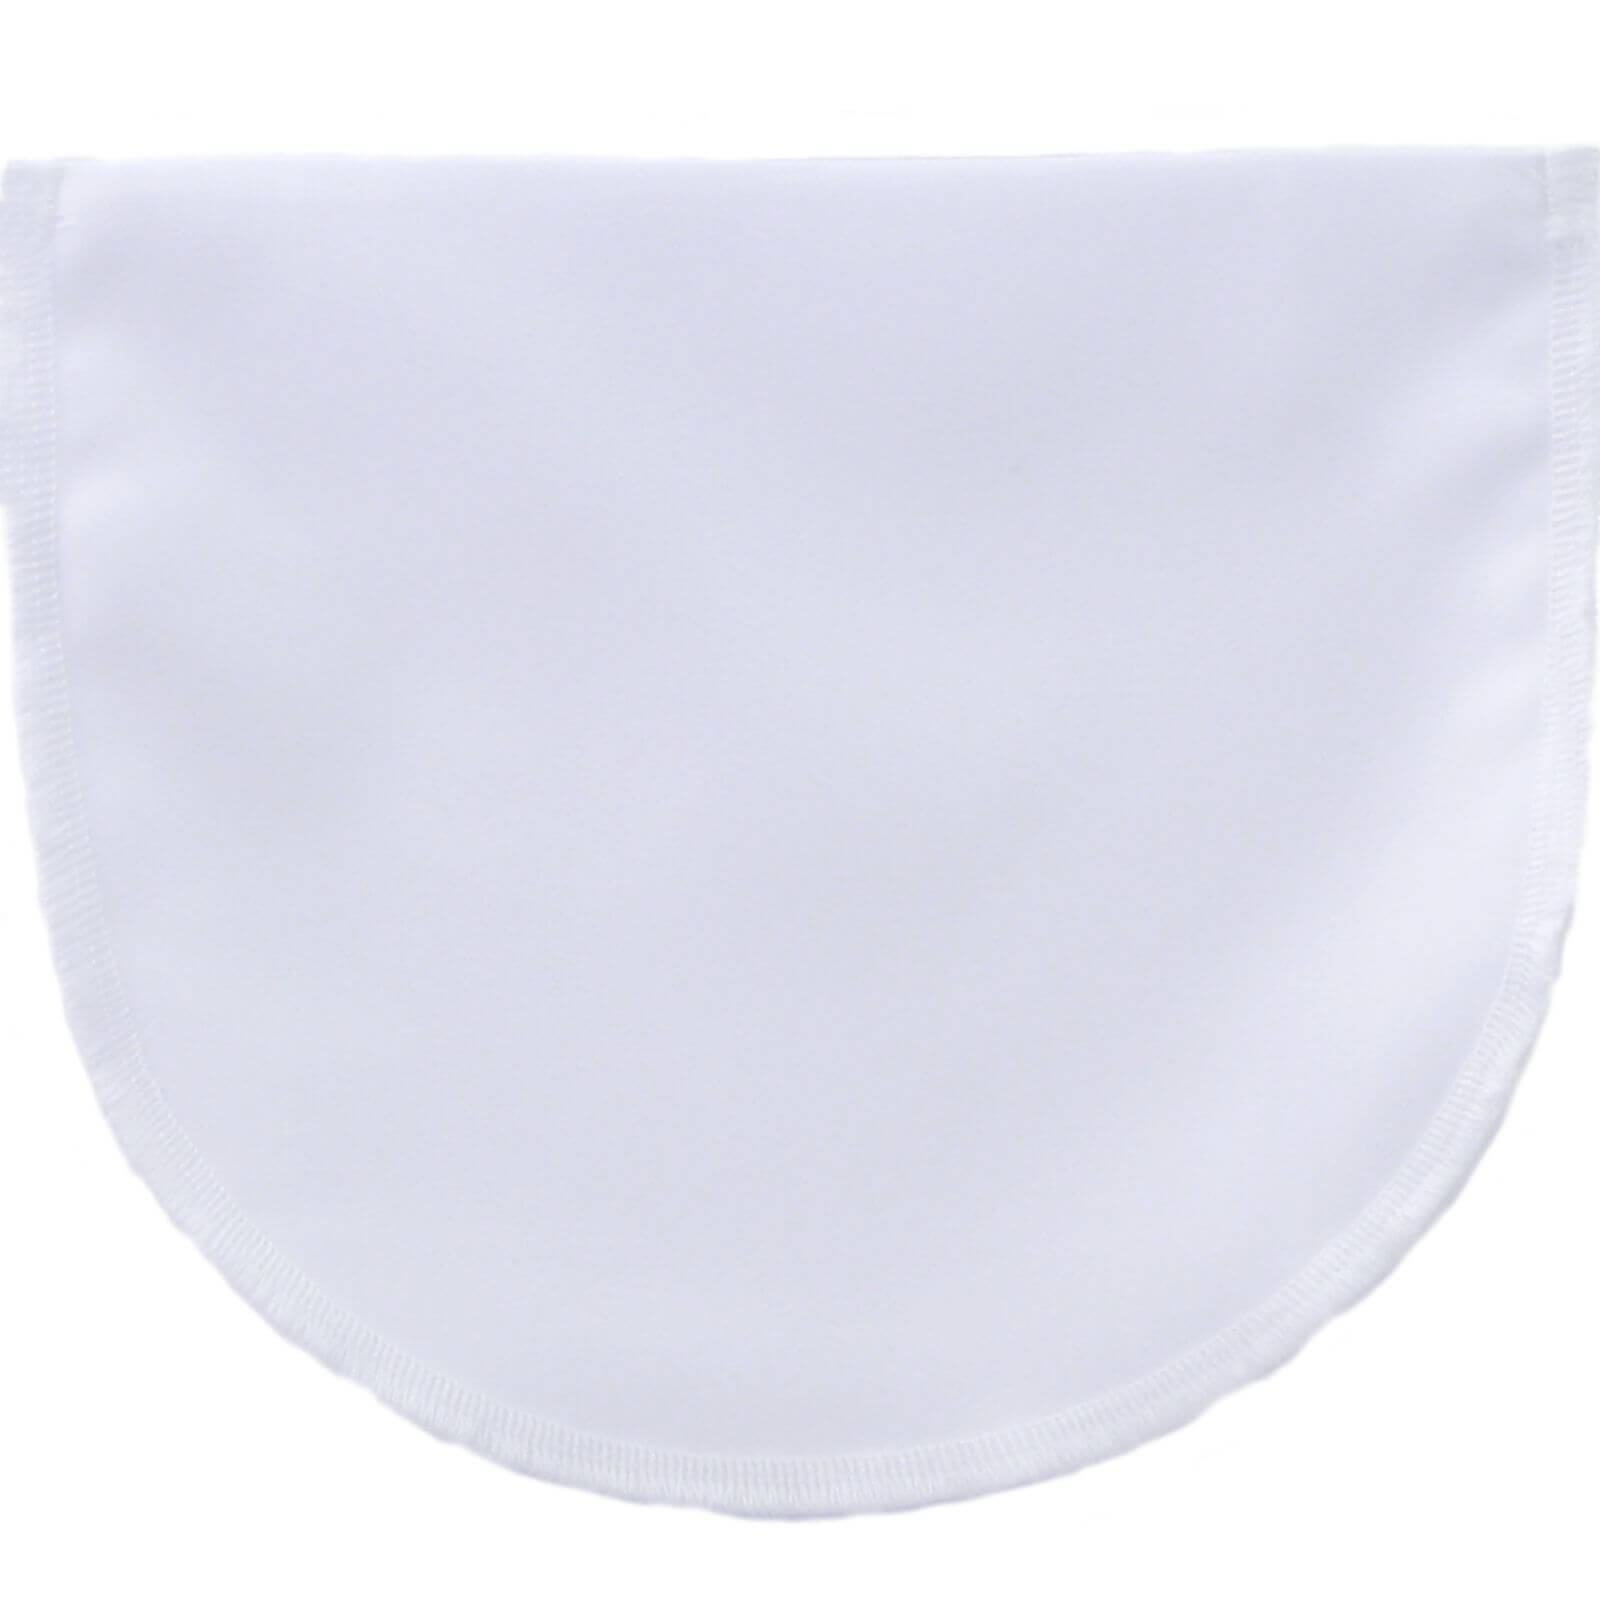 White Modesty panel with no lace